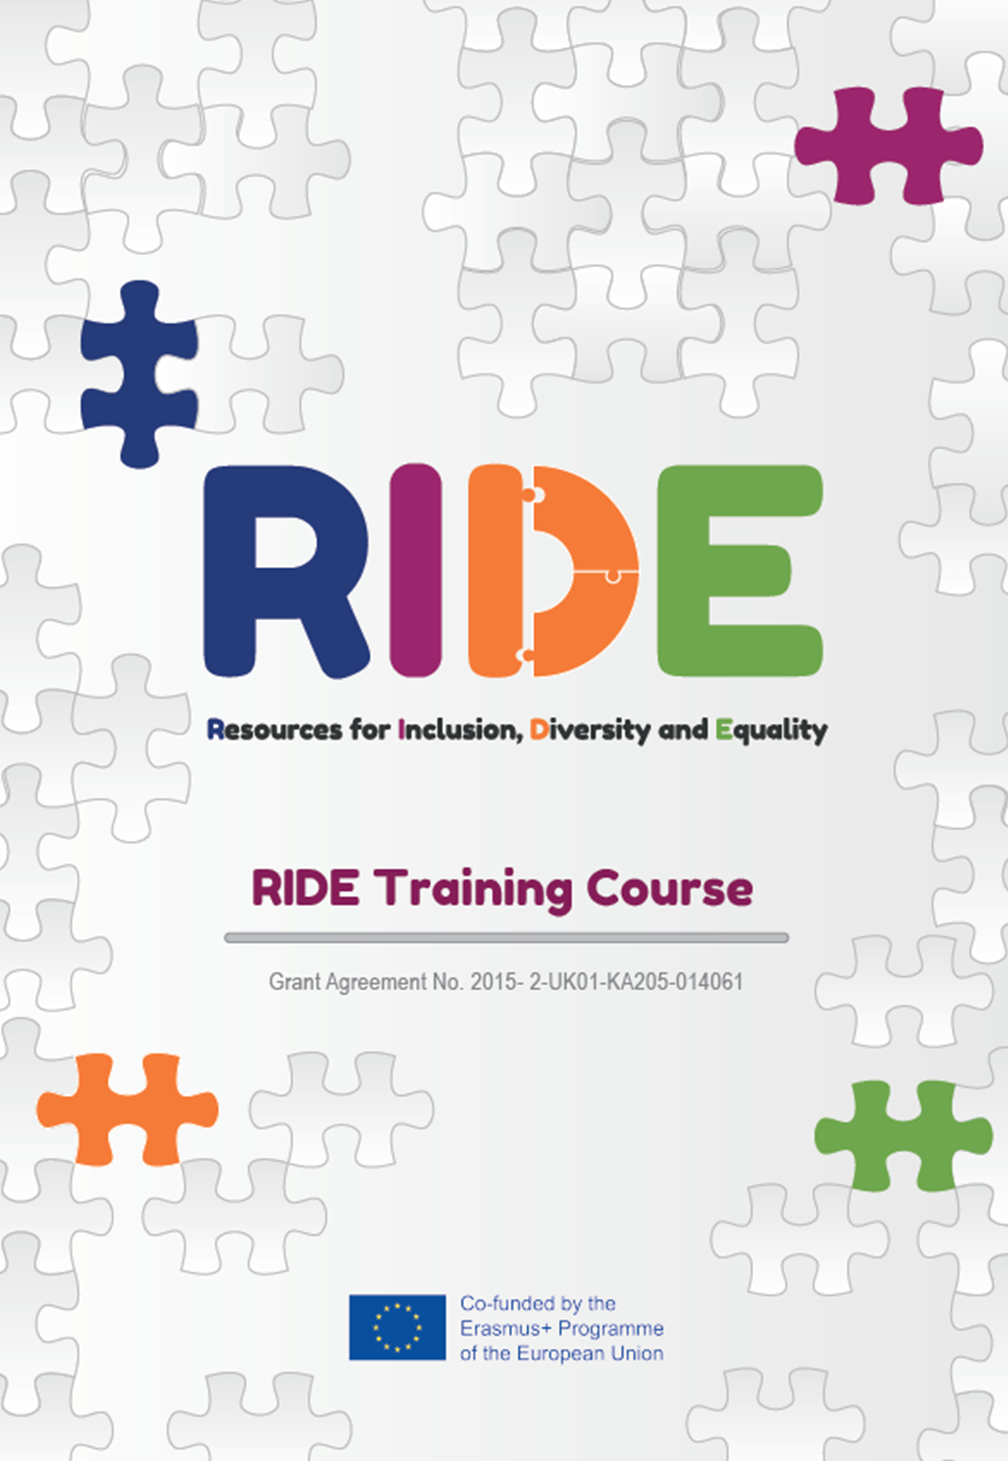 RIDE Training Resource - Training Course for youth workers